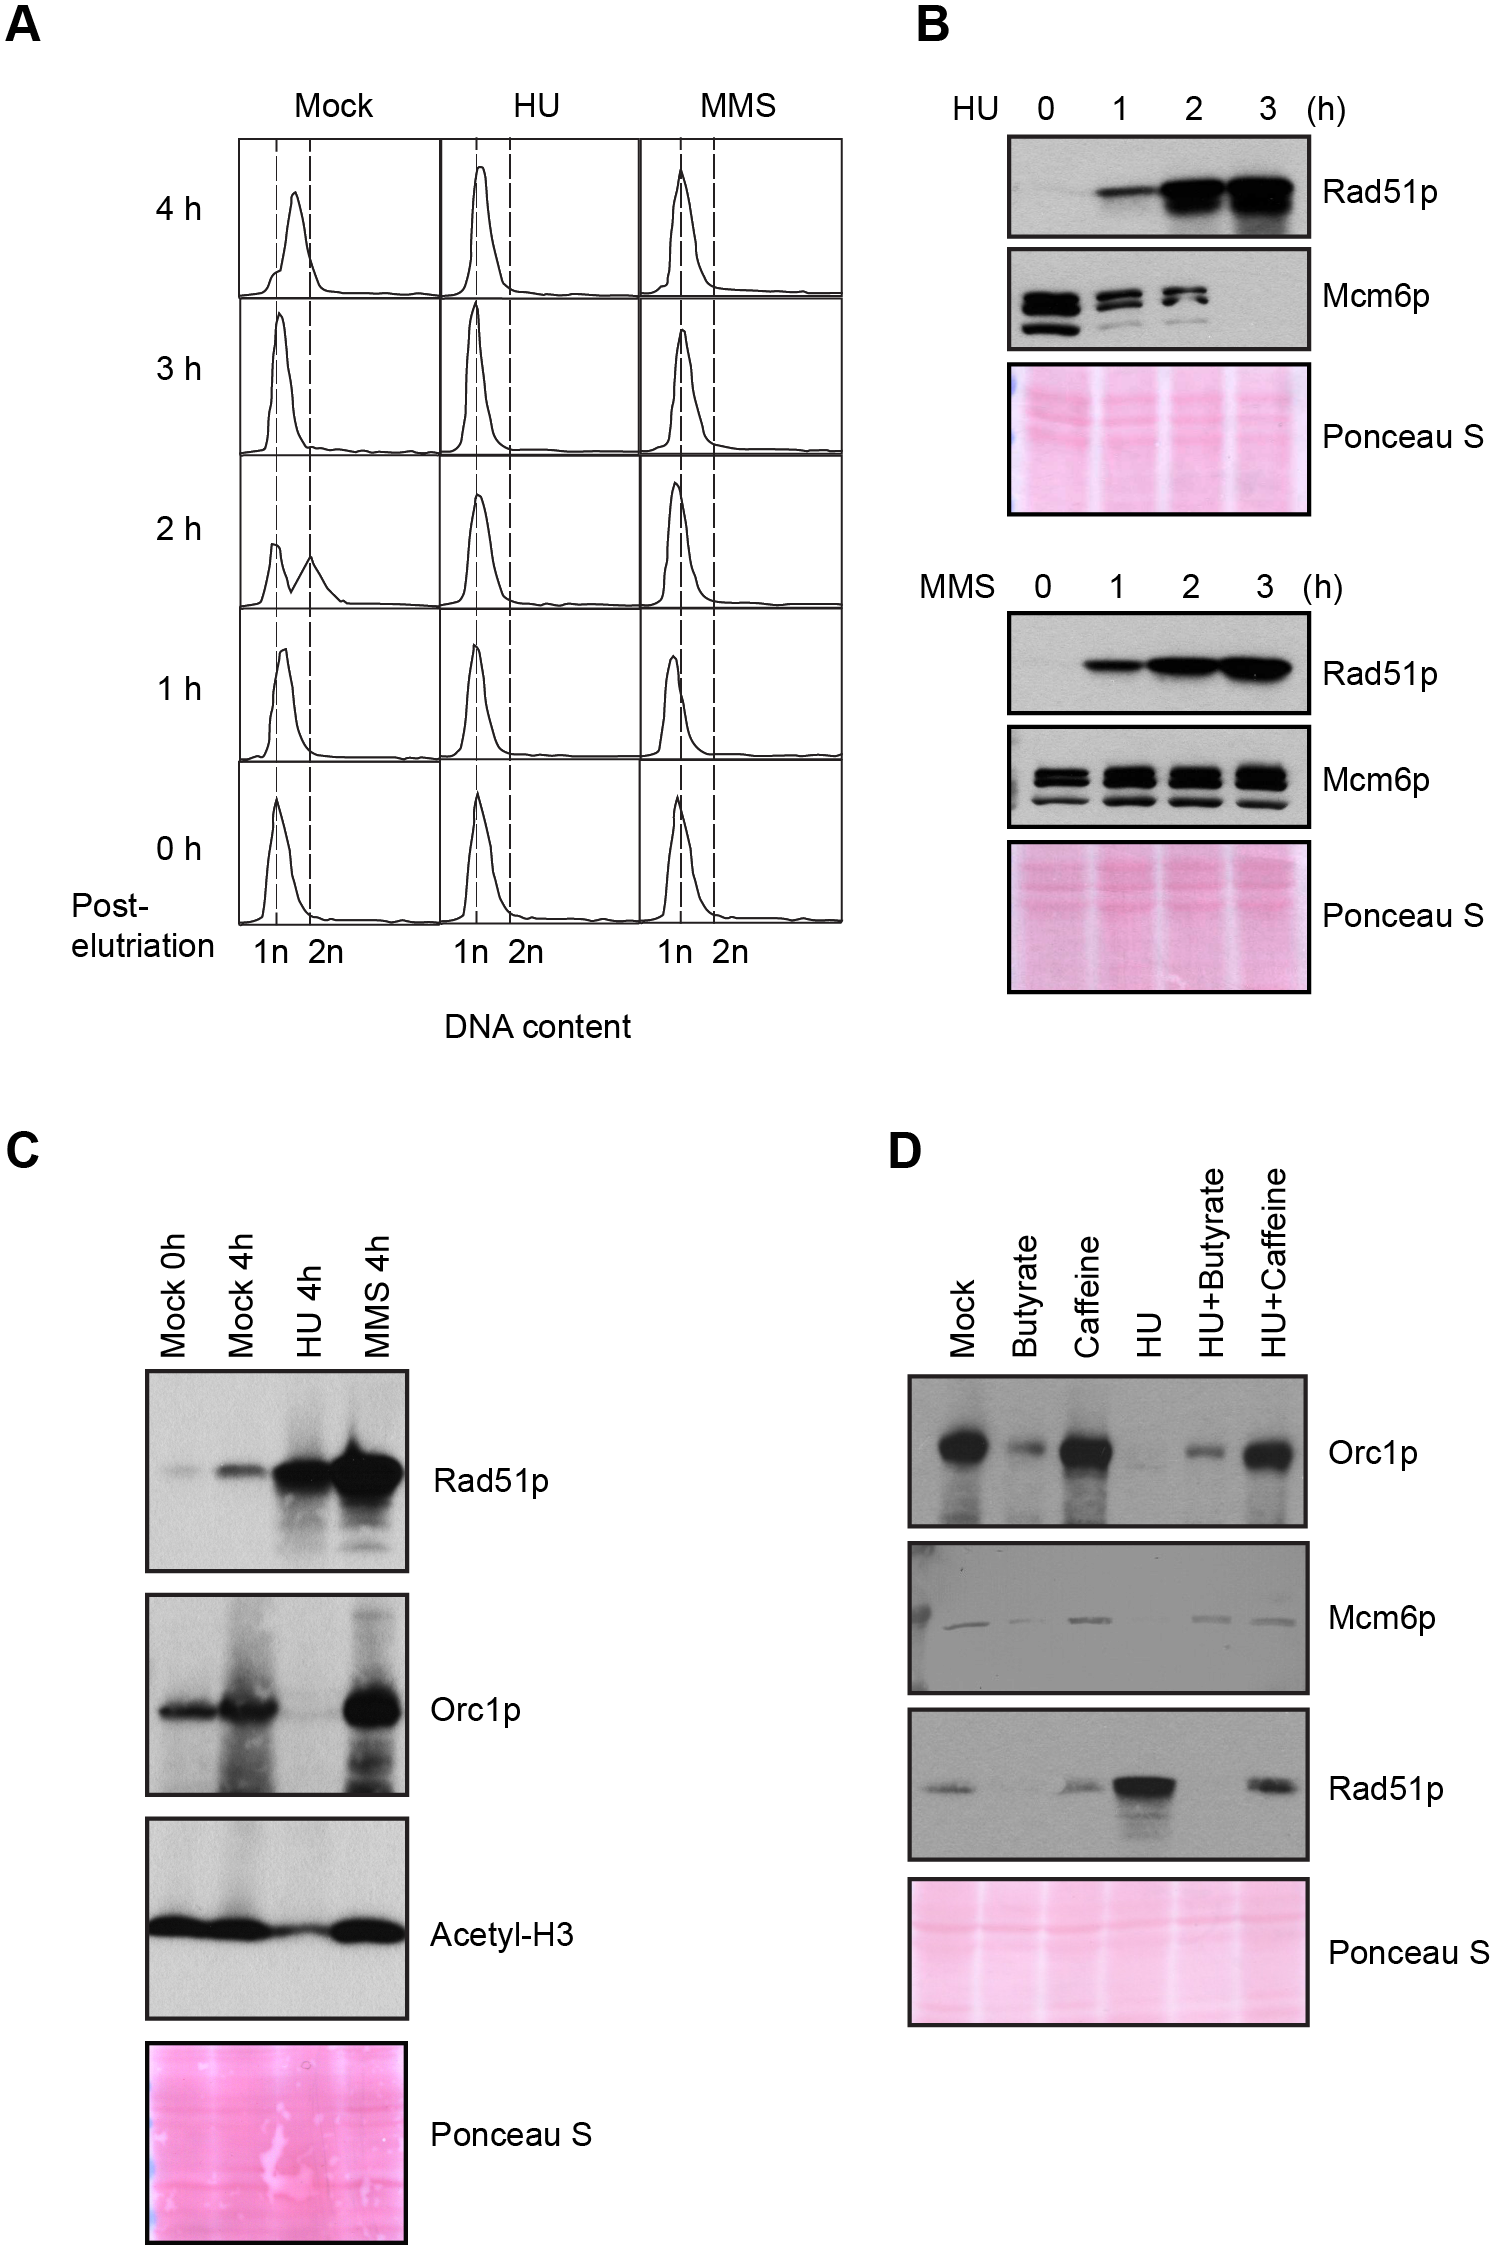 Effect of HU and MMS on pre-RC proteins in G1 treated cultures.